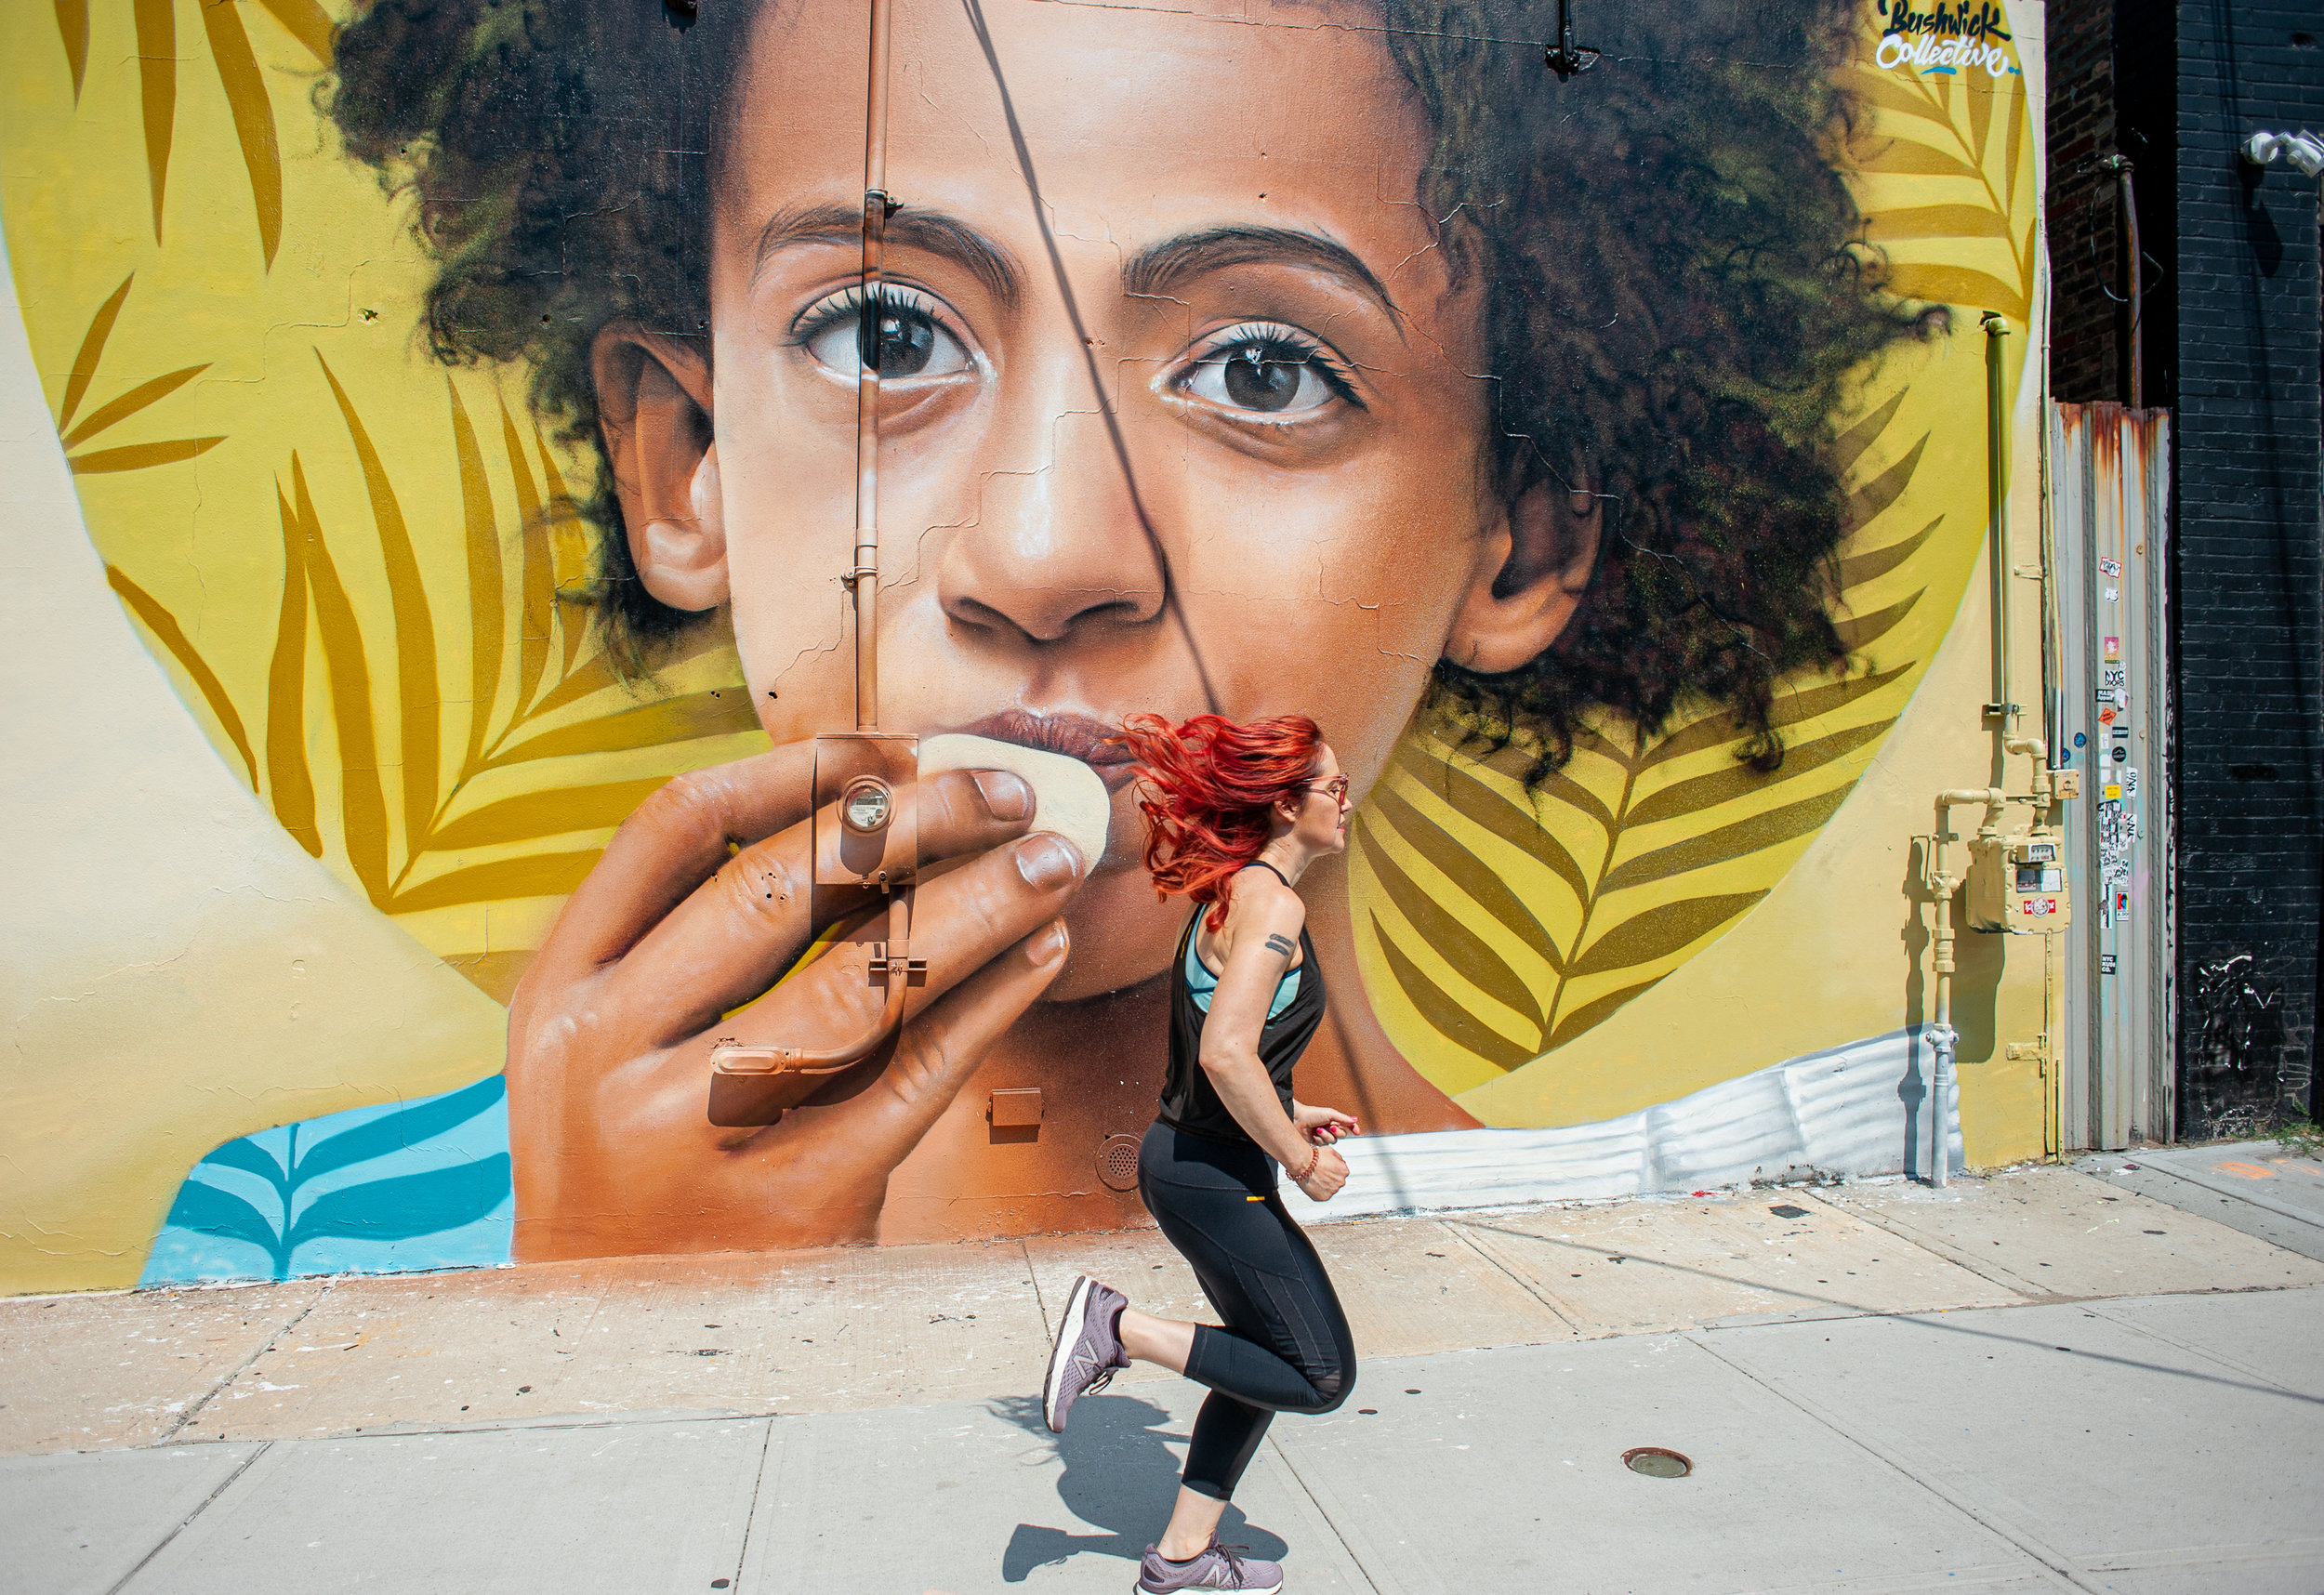 Photo by  Marques Jackson  at Bushwick Collective. Mural by  Roske Loste .